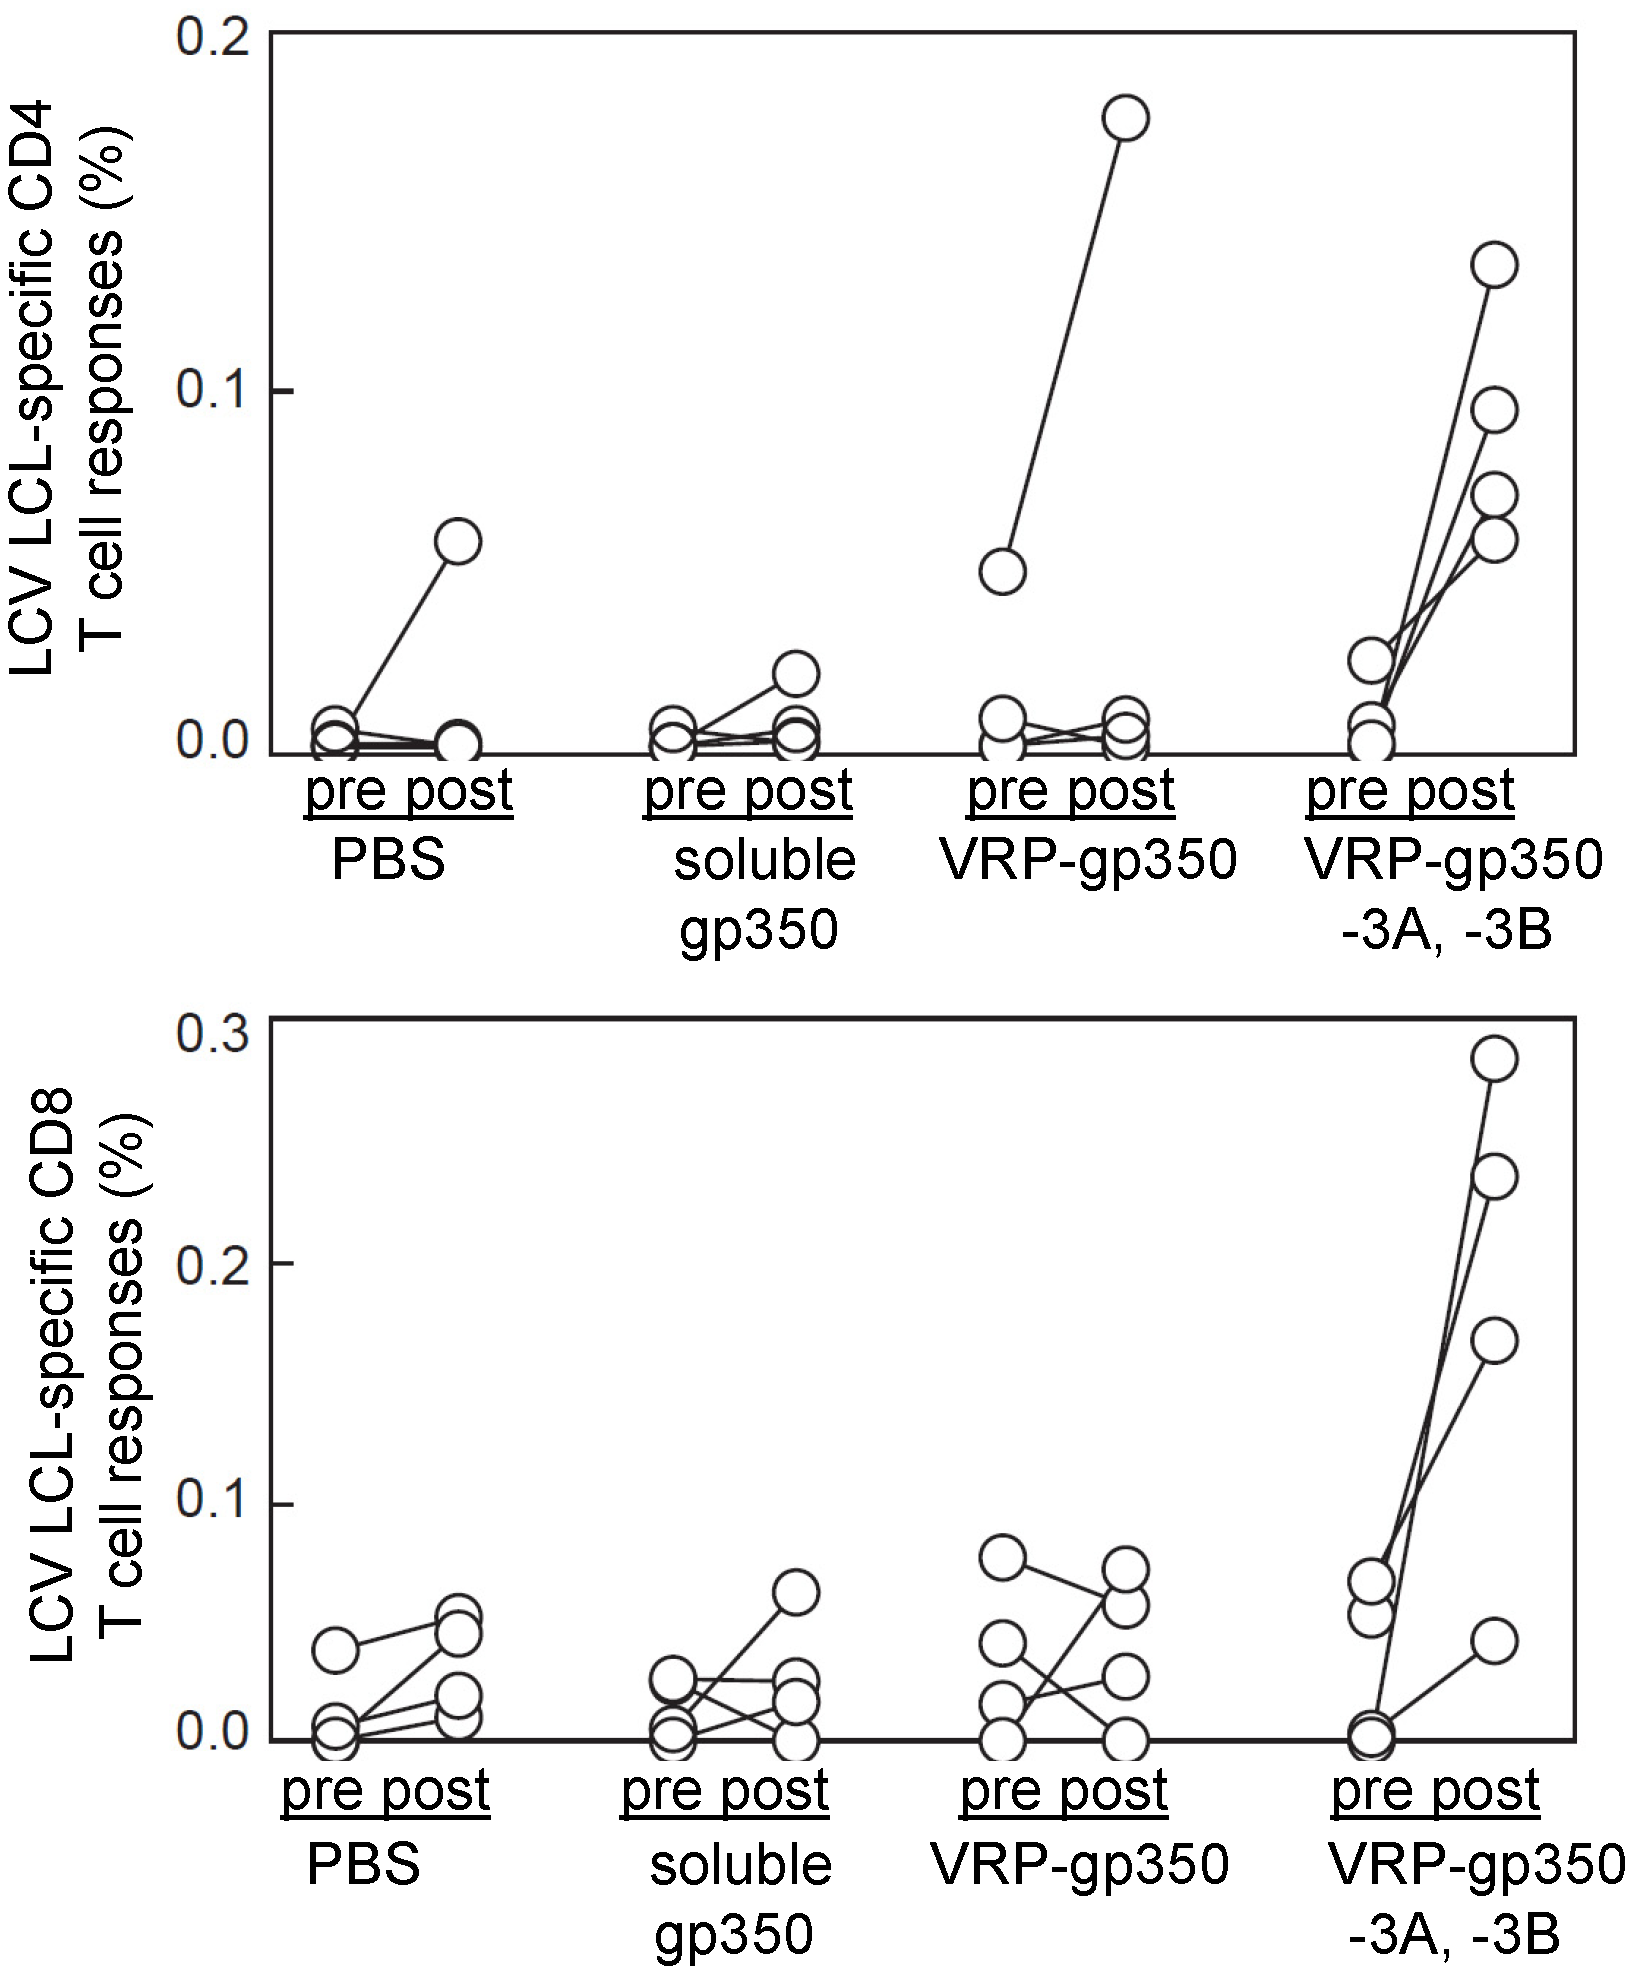 Detection of rhesus LCV-specific CD4 and CD8 T cell responses to gp350 or EBNA-3A and EBNA-3B in rhesus monkeys.